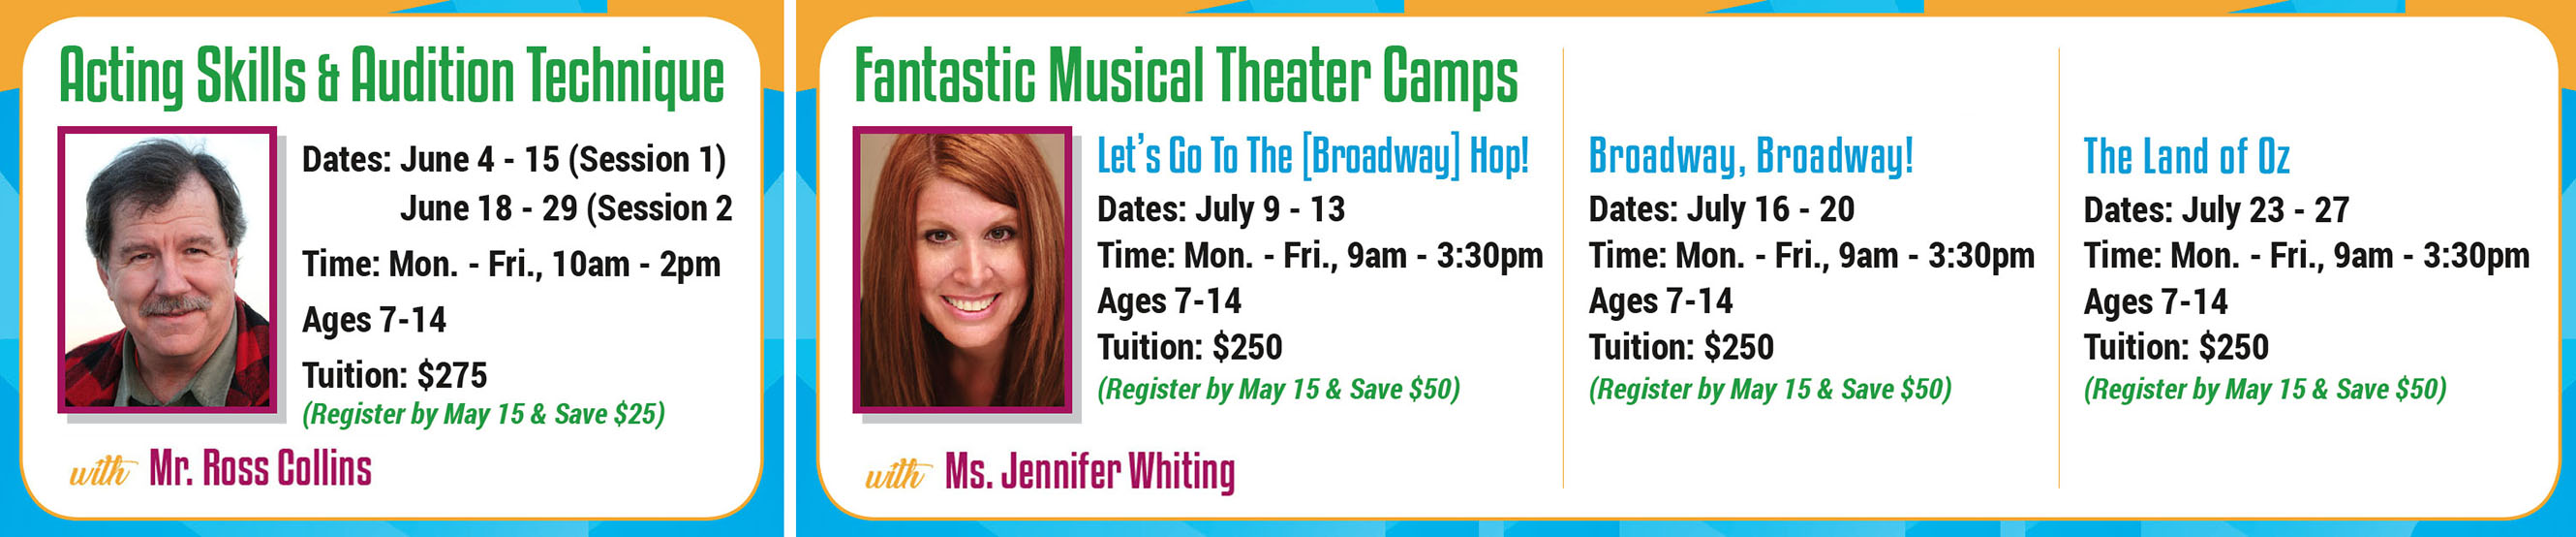 Fountain Hills Theater Summer Camp in Arizona